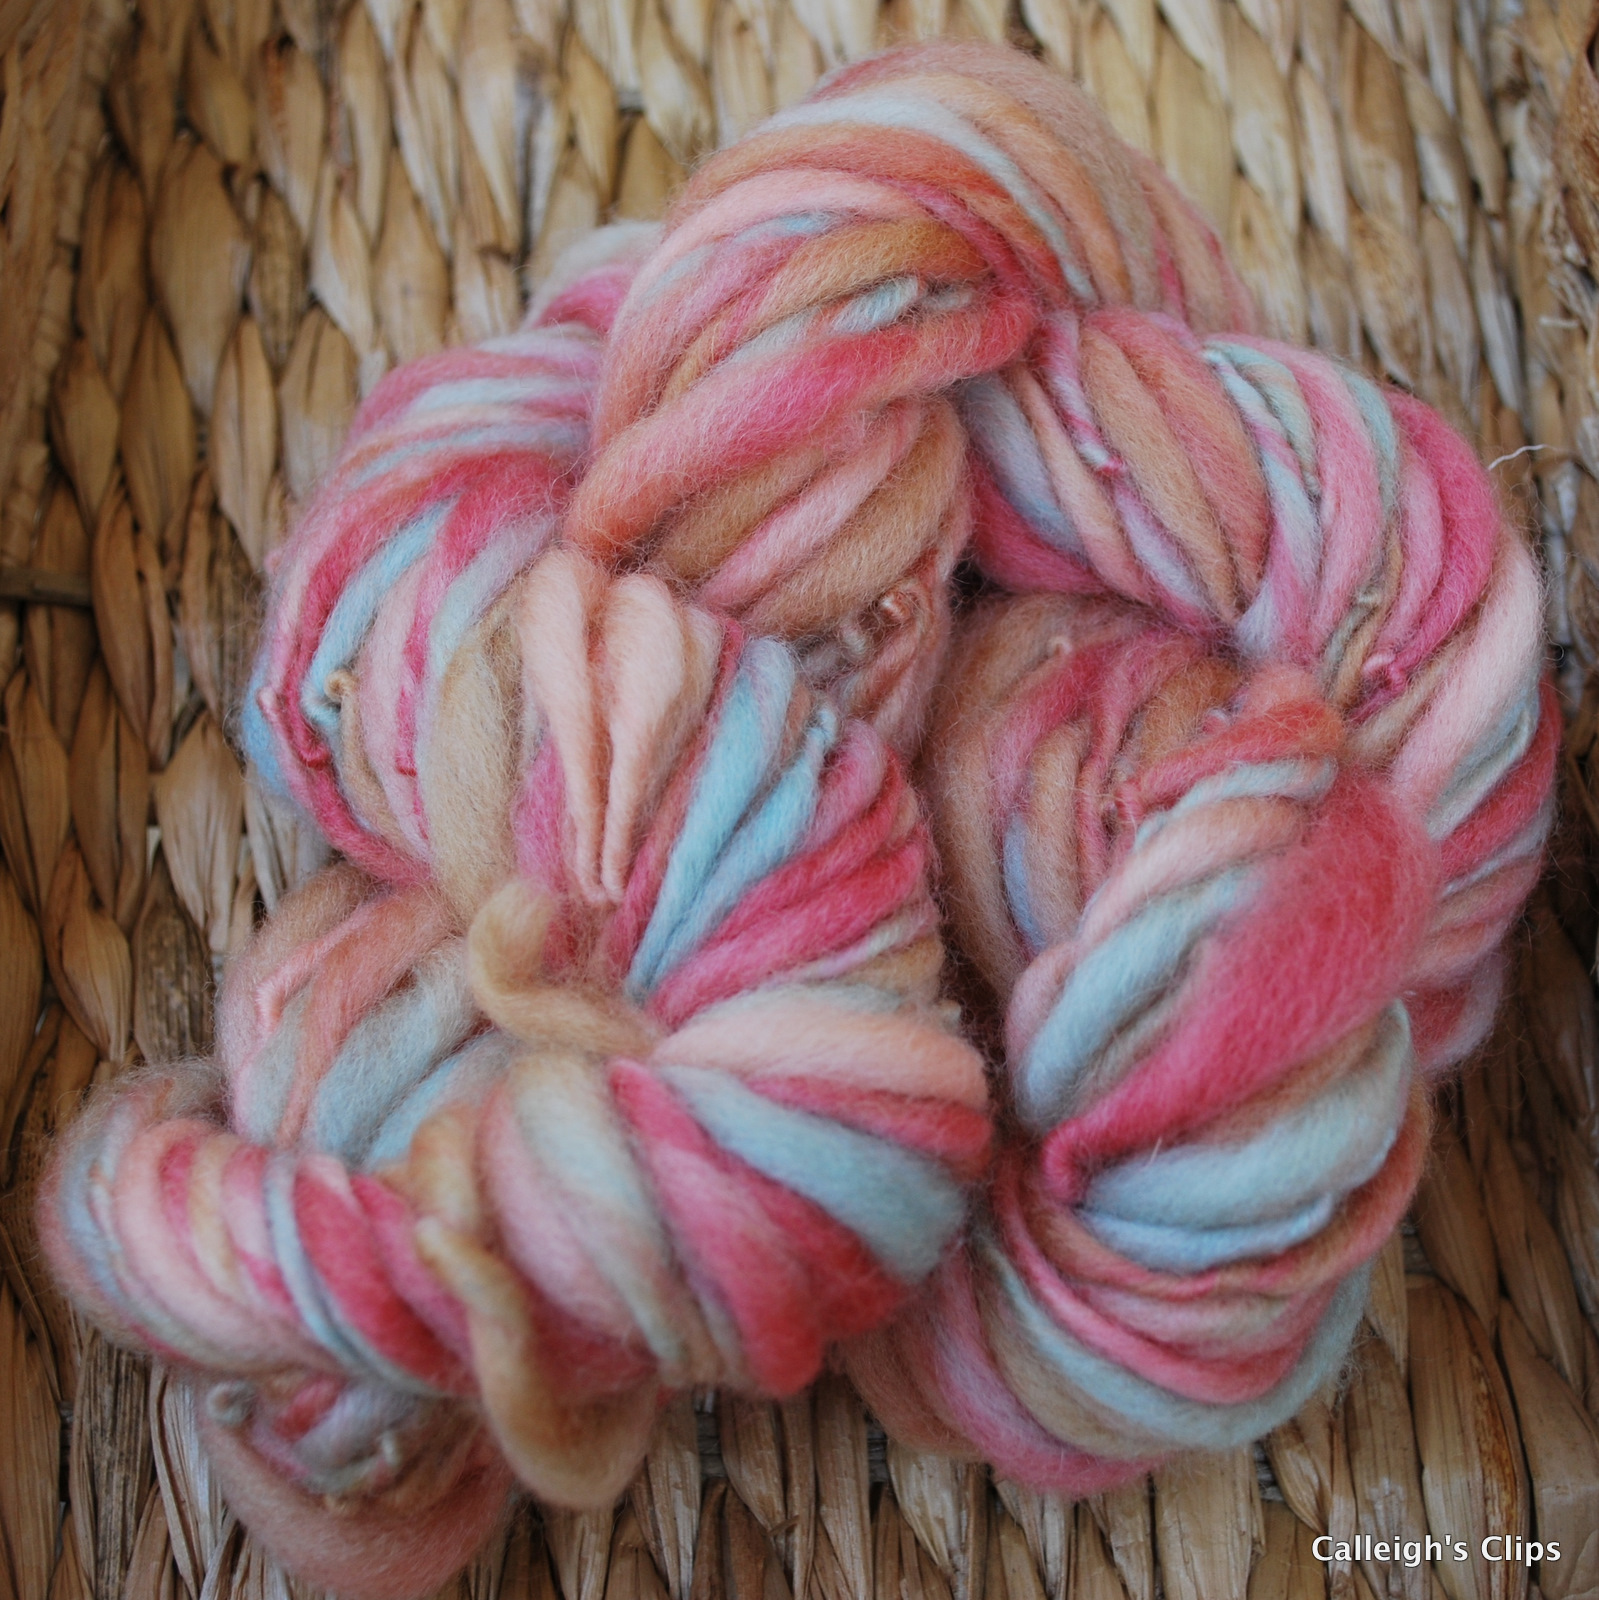 Calleighs Clips & Crochet Creations: Thick and Thin Yarn